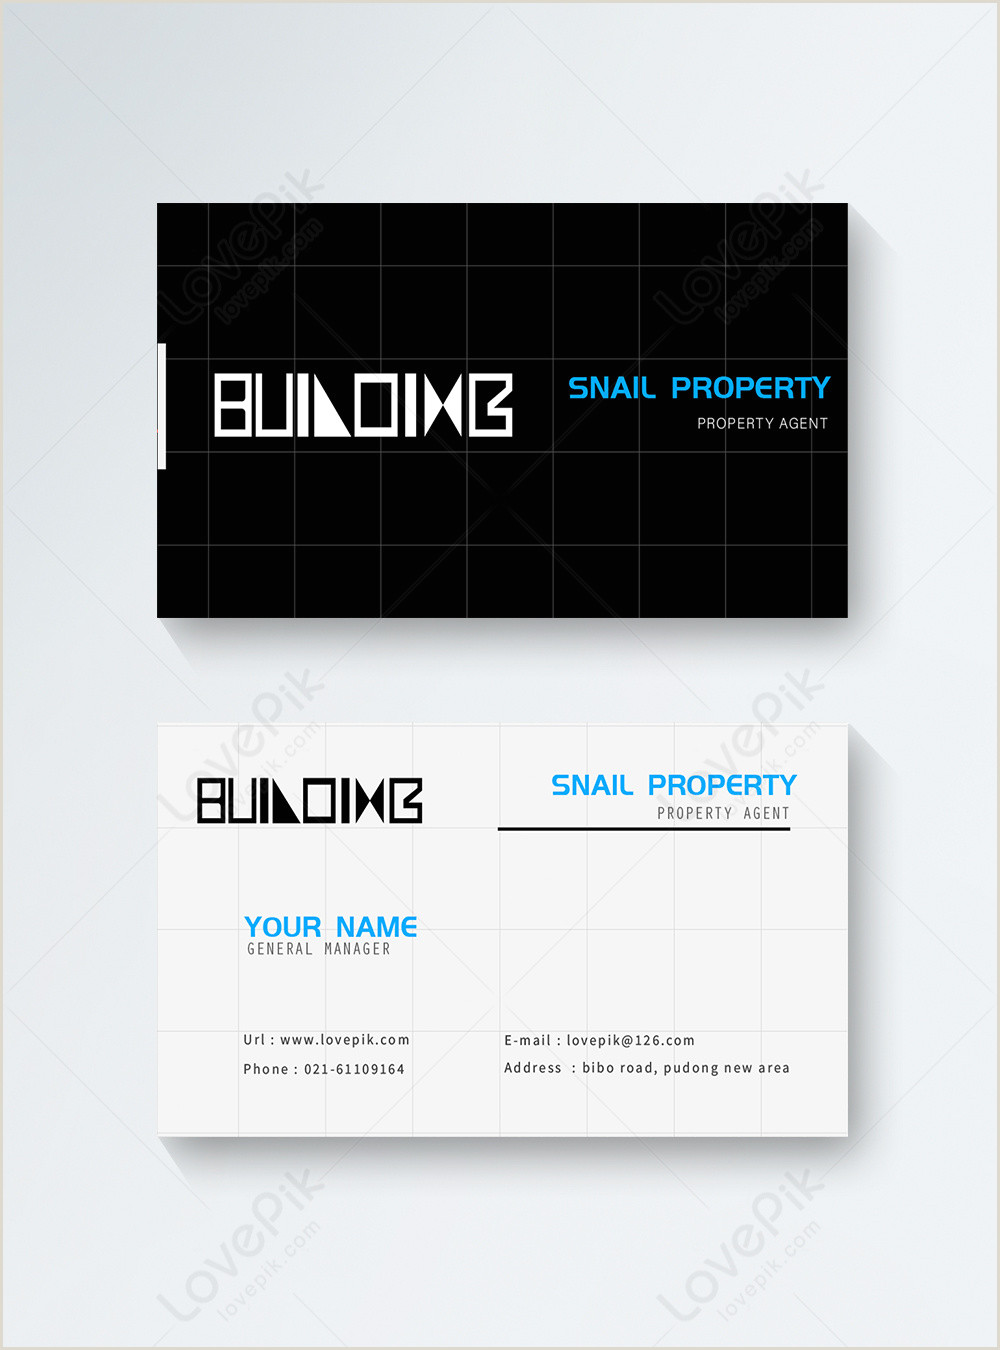 Real Estate Business Card Photos Real Estate Business Card Template Image Picture Free